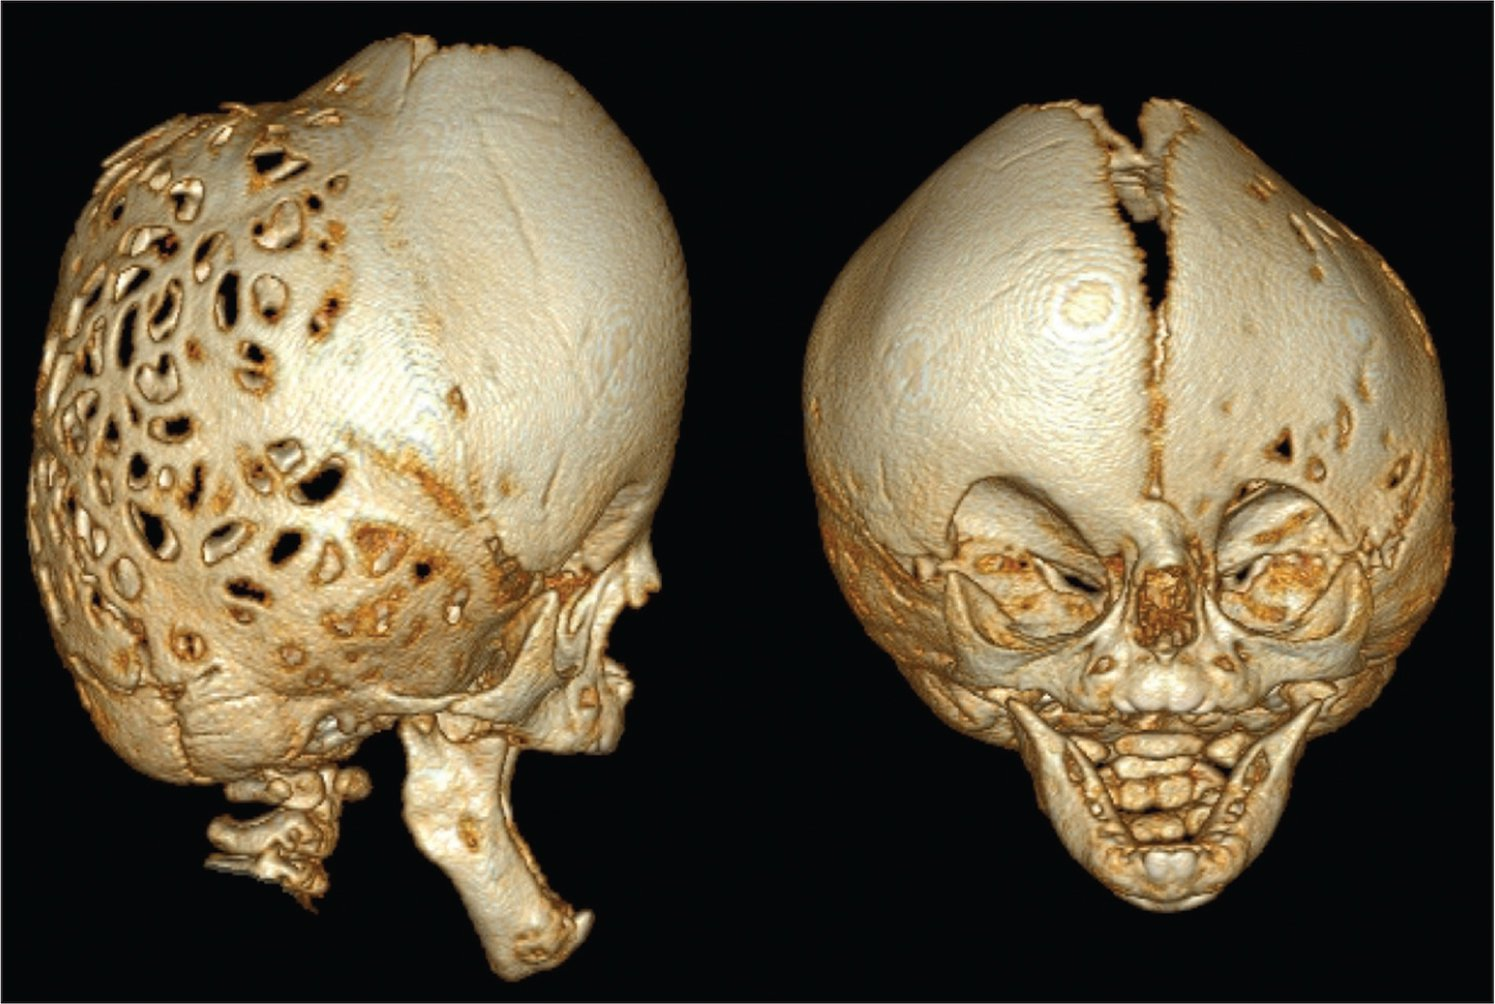 Computed tomography three-dimensional skull and facial bones demonstrating increased craniolacunae throughout the cavarium, multiple suture synostosis, and severe mid face hypoplasia.